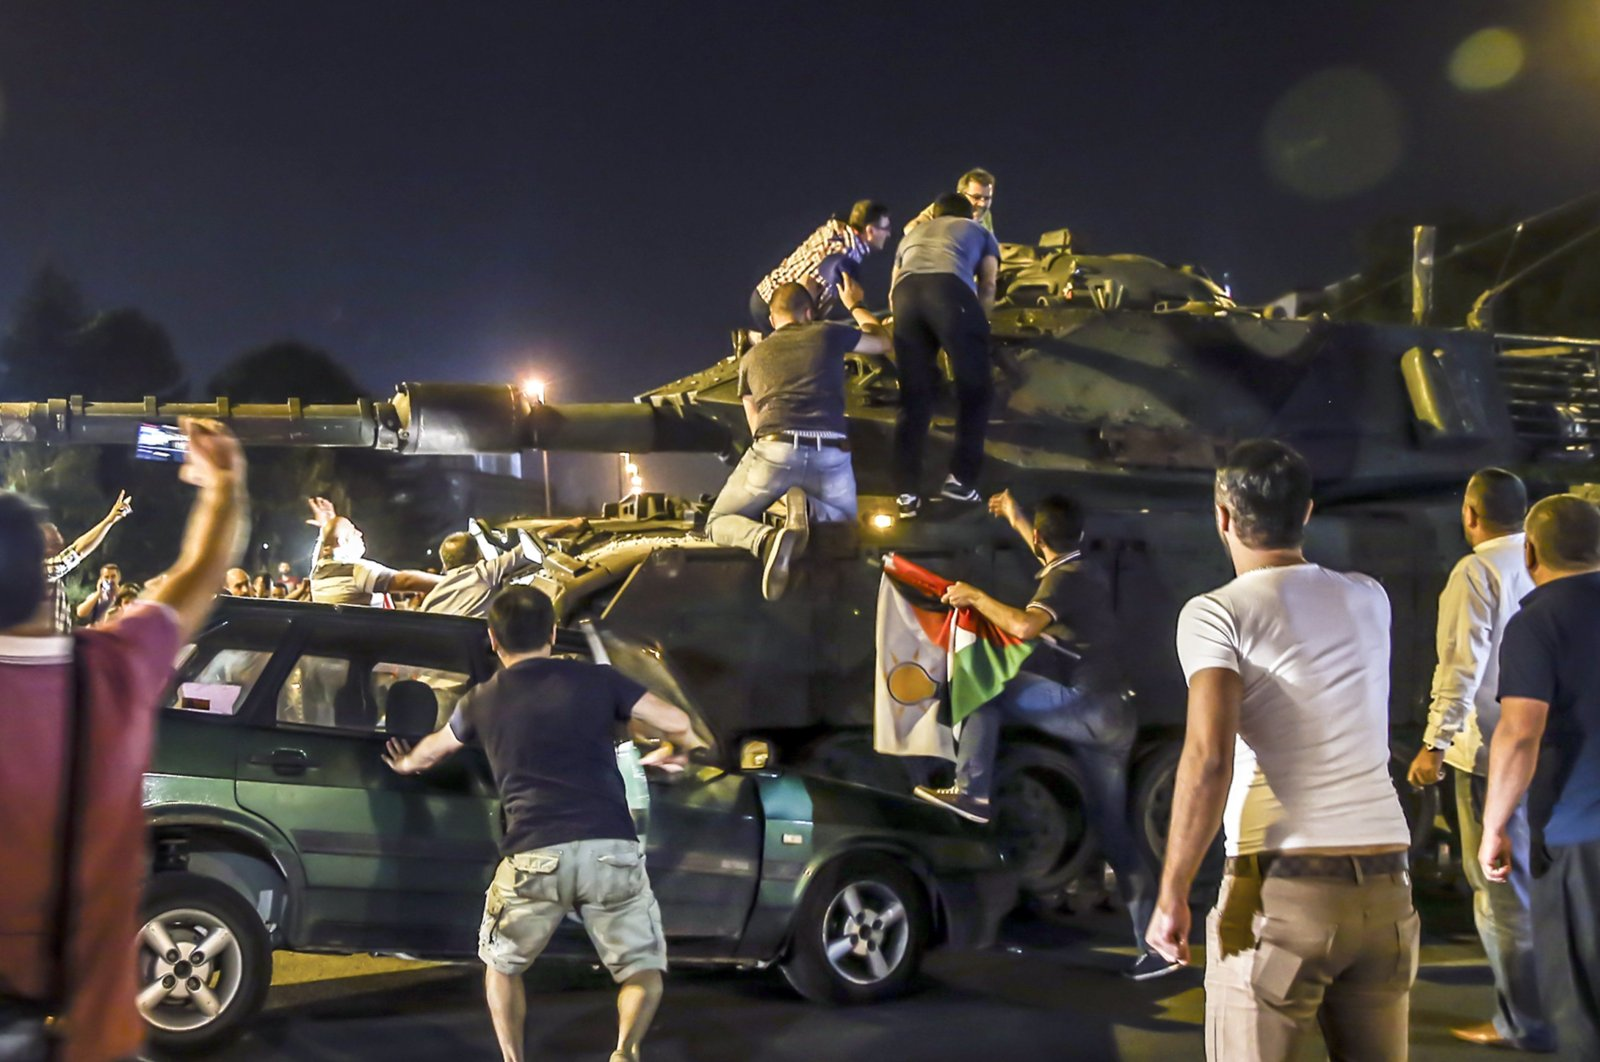 Civilians try to stop a tank controlled by putschists in the capital Ankara, Turkey, July 15, 2016. (AA Photo)